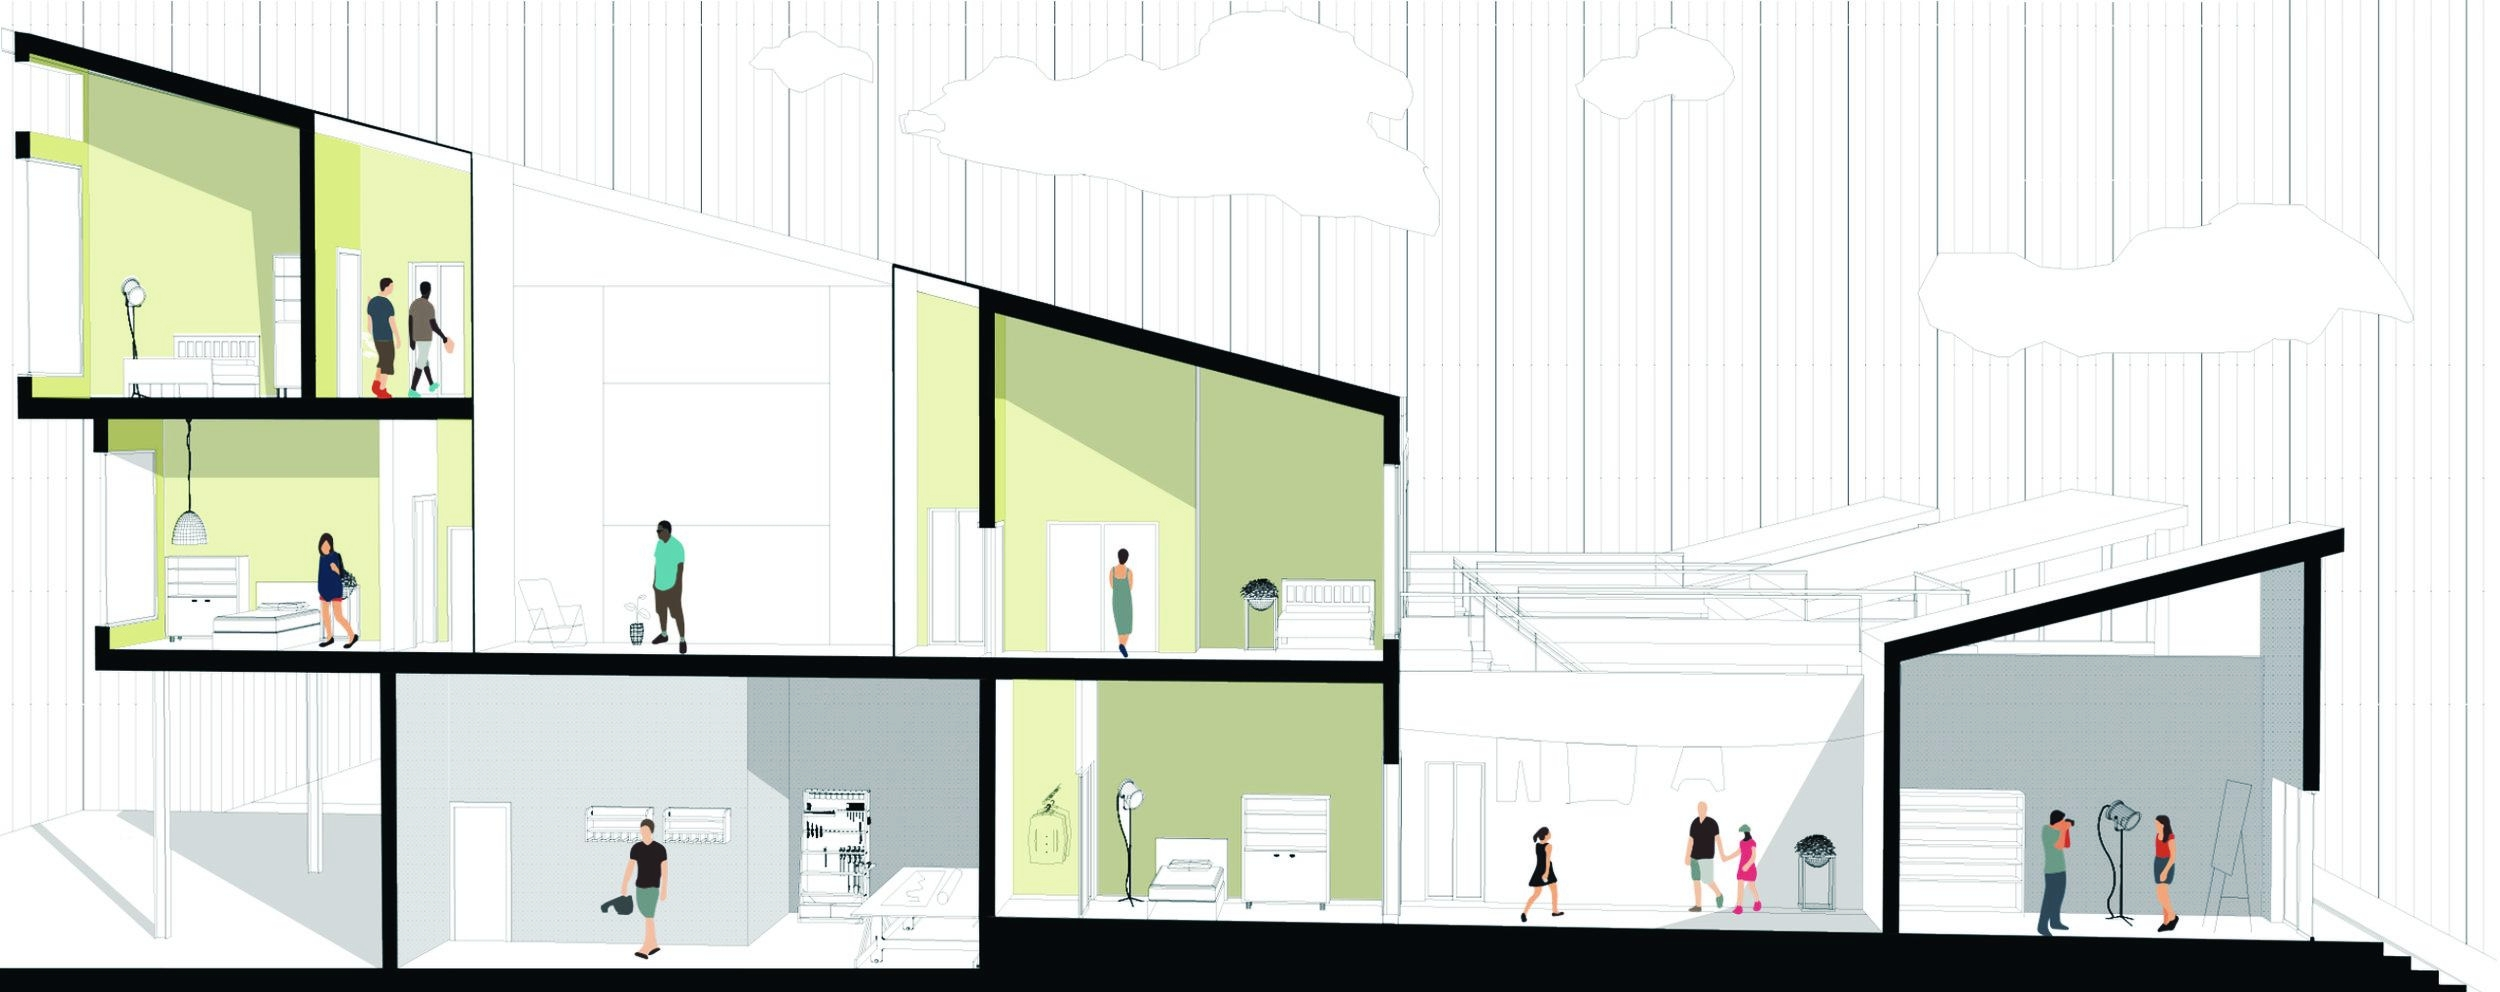 Perspective section of building, showing the juxtaposition of Maker+Commercial spaces, Courtyards, and Residential spaces.